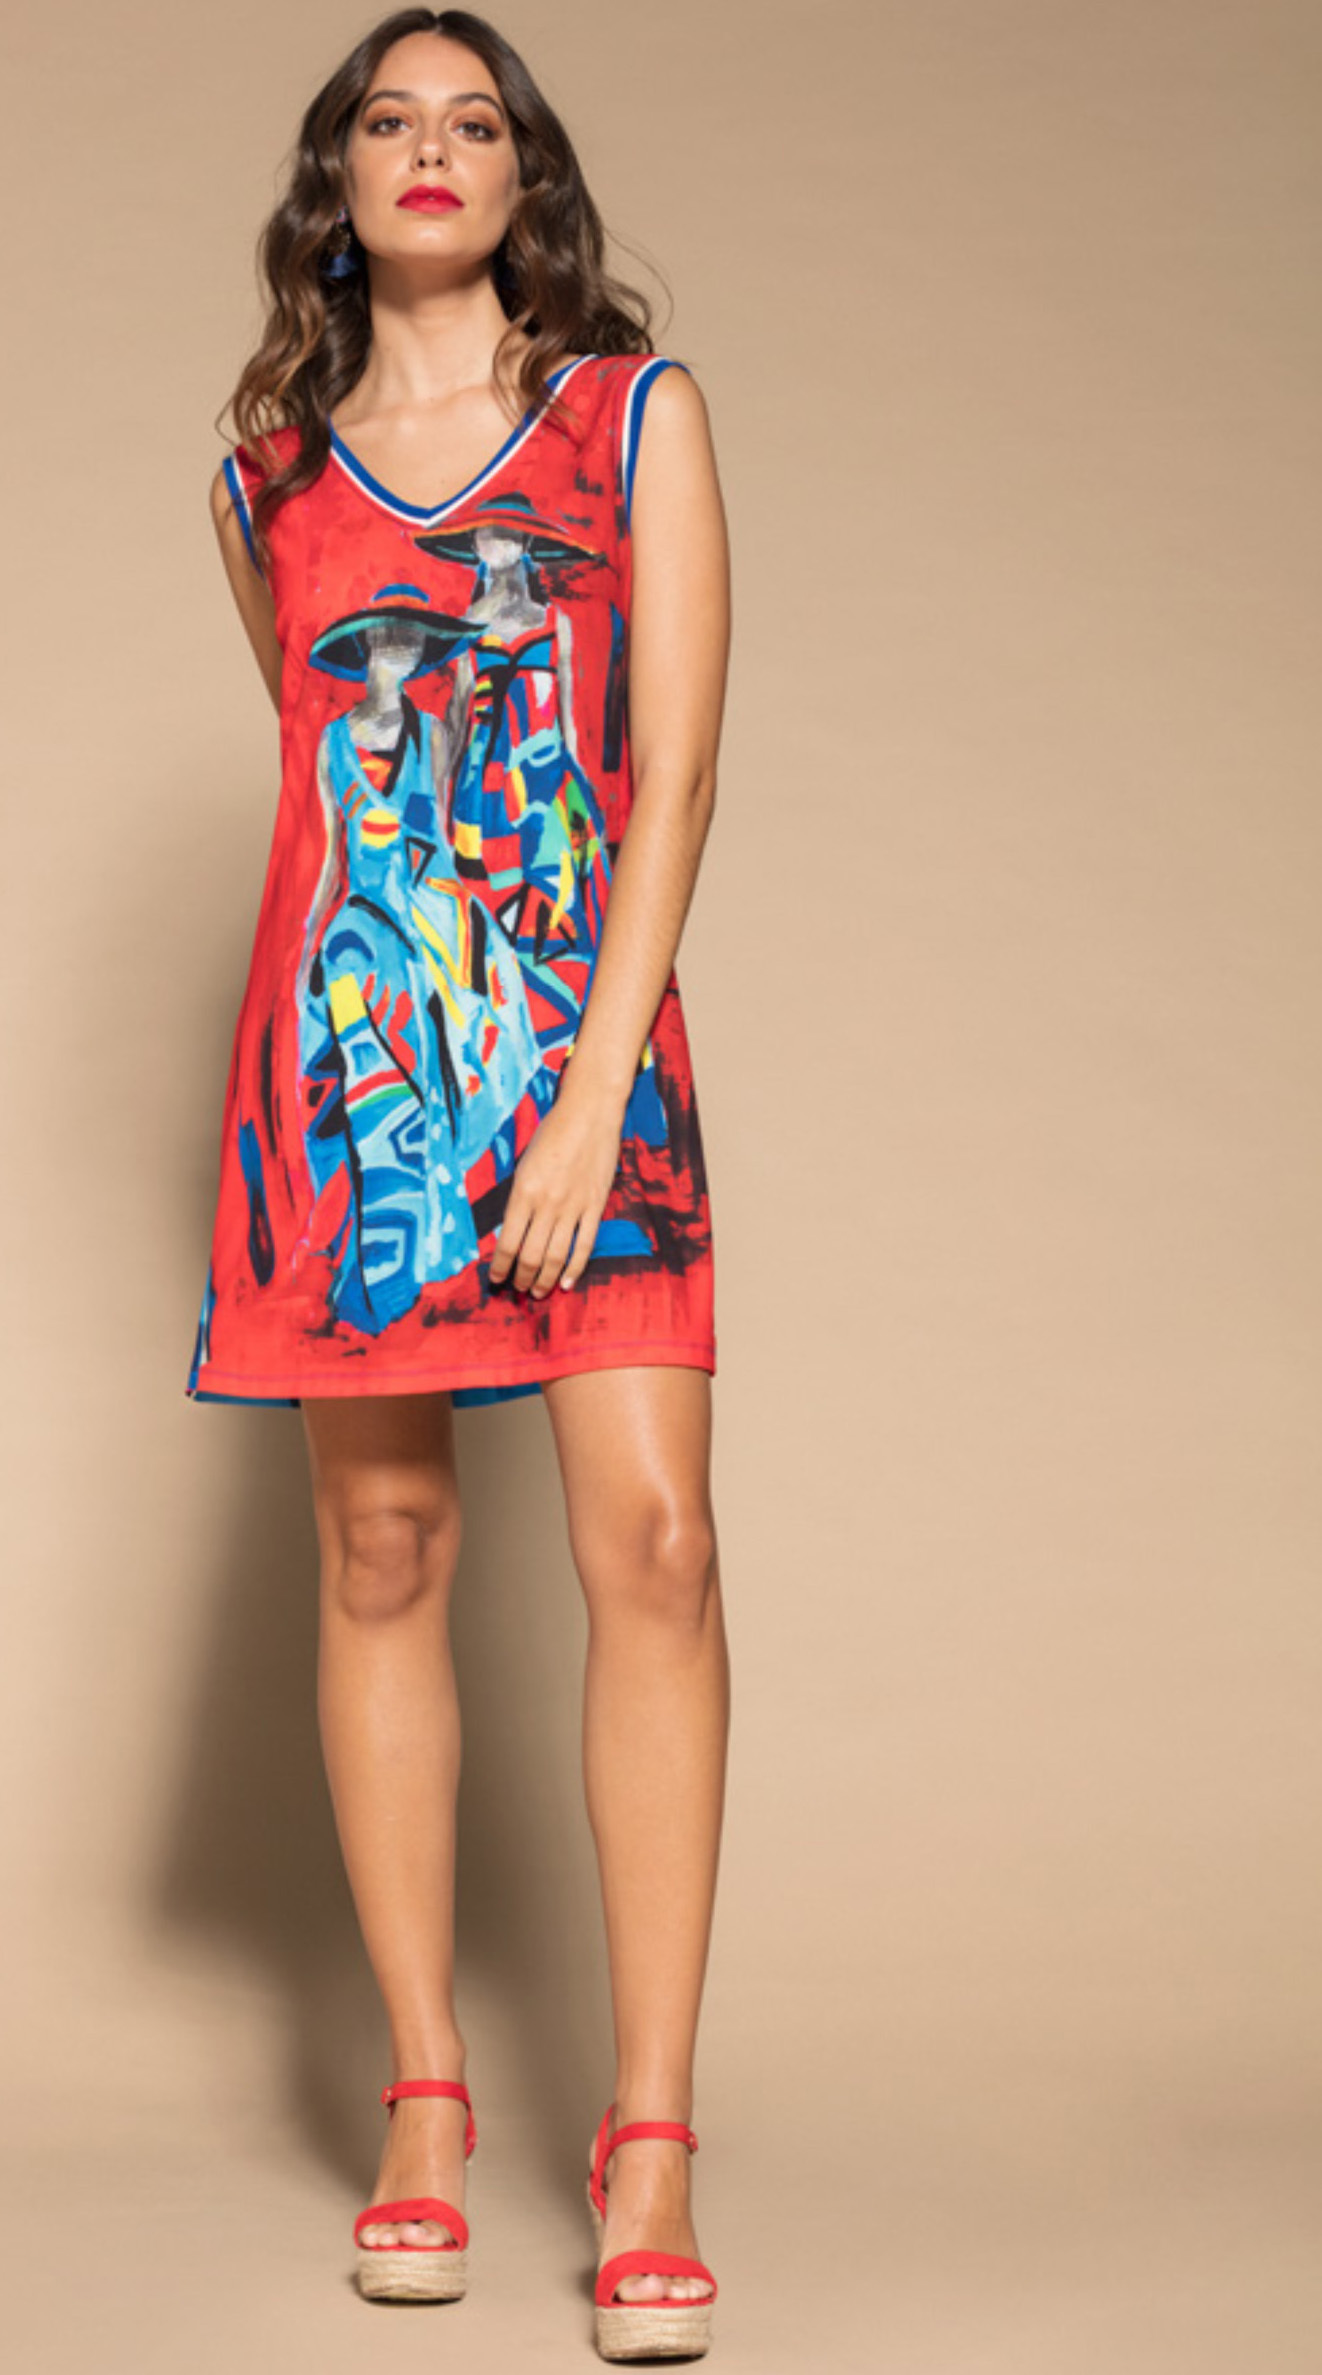 Maloka: Colors Of Picasso's Gypsy Beauty Abstract Art Tunic/Dress (More Arrived!) MK_GENEVIEVE_N1